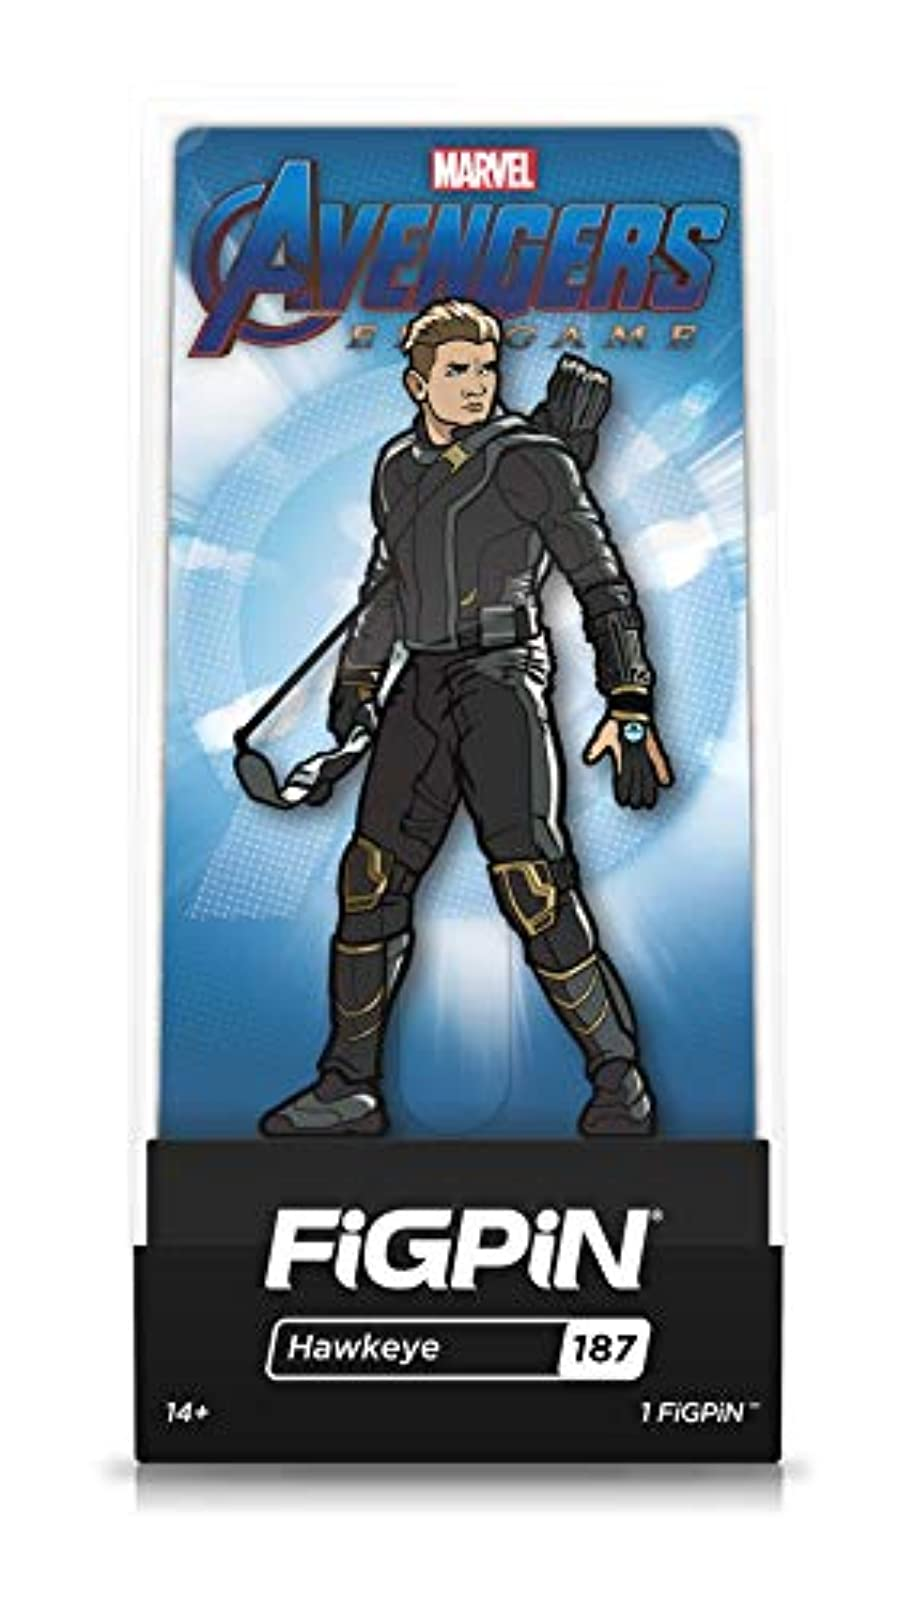 Figpin Avengers Endgame: Hawkeye Collectible Pin With Premium Display Case Not T